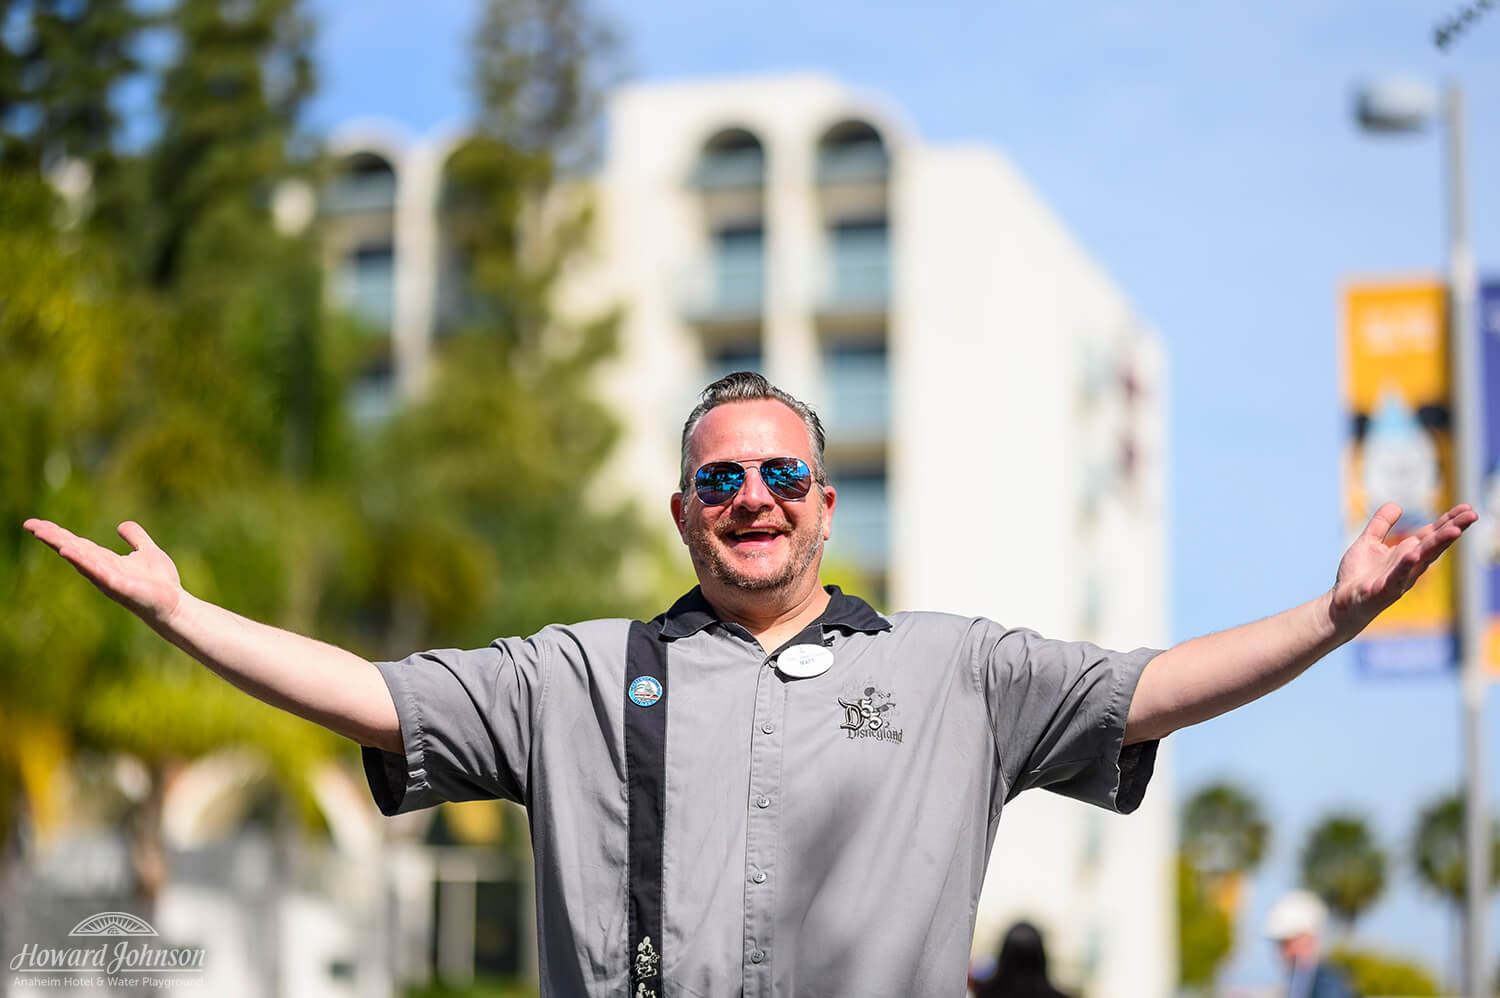 A man wearing sunglasses and a Disneyland shirt holds his hands in the air and smiles, pictured in front of the Howard Johnson Anaheim hotel